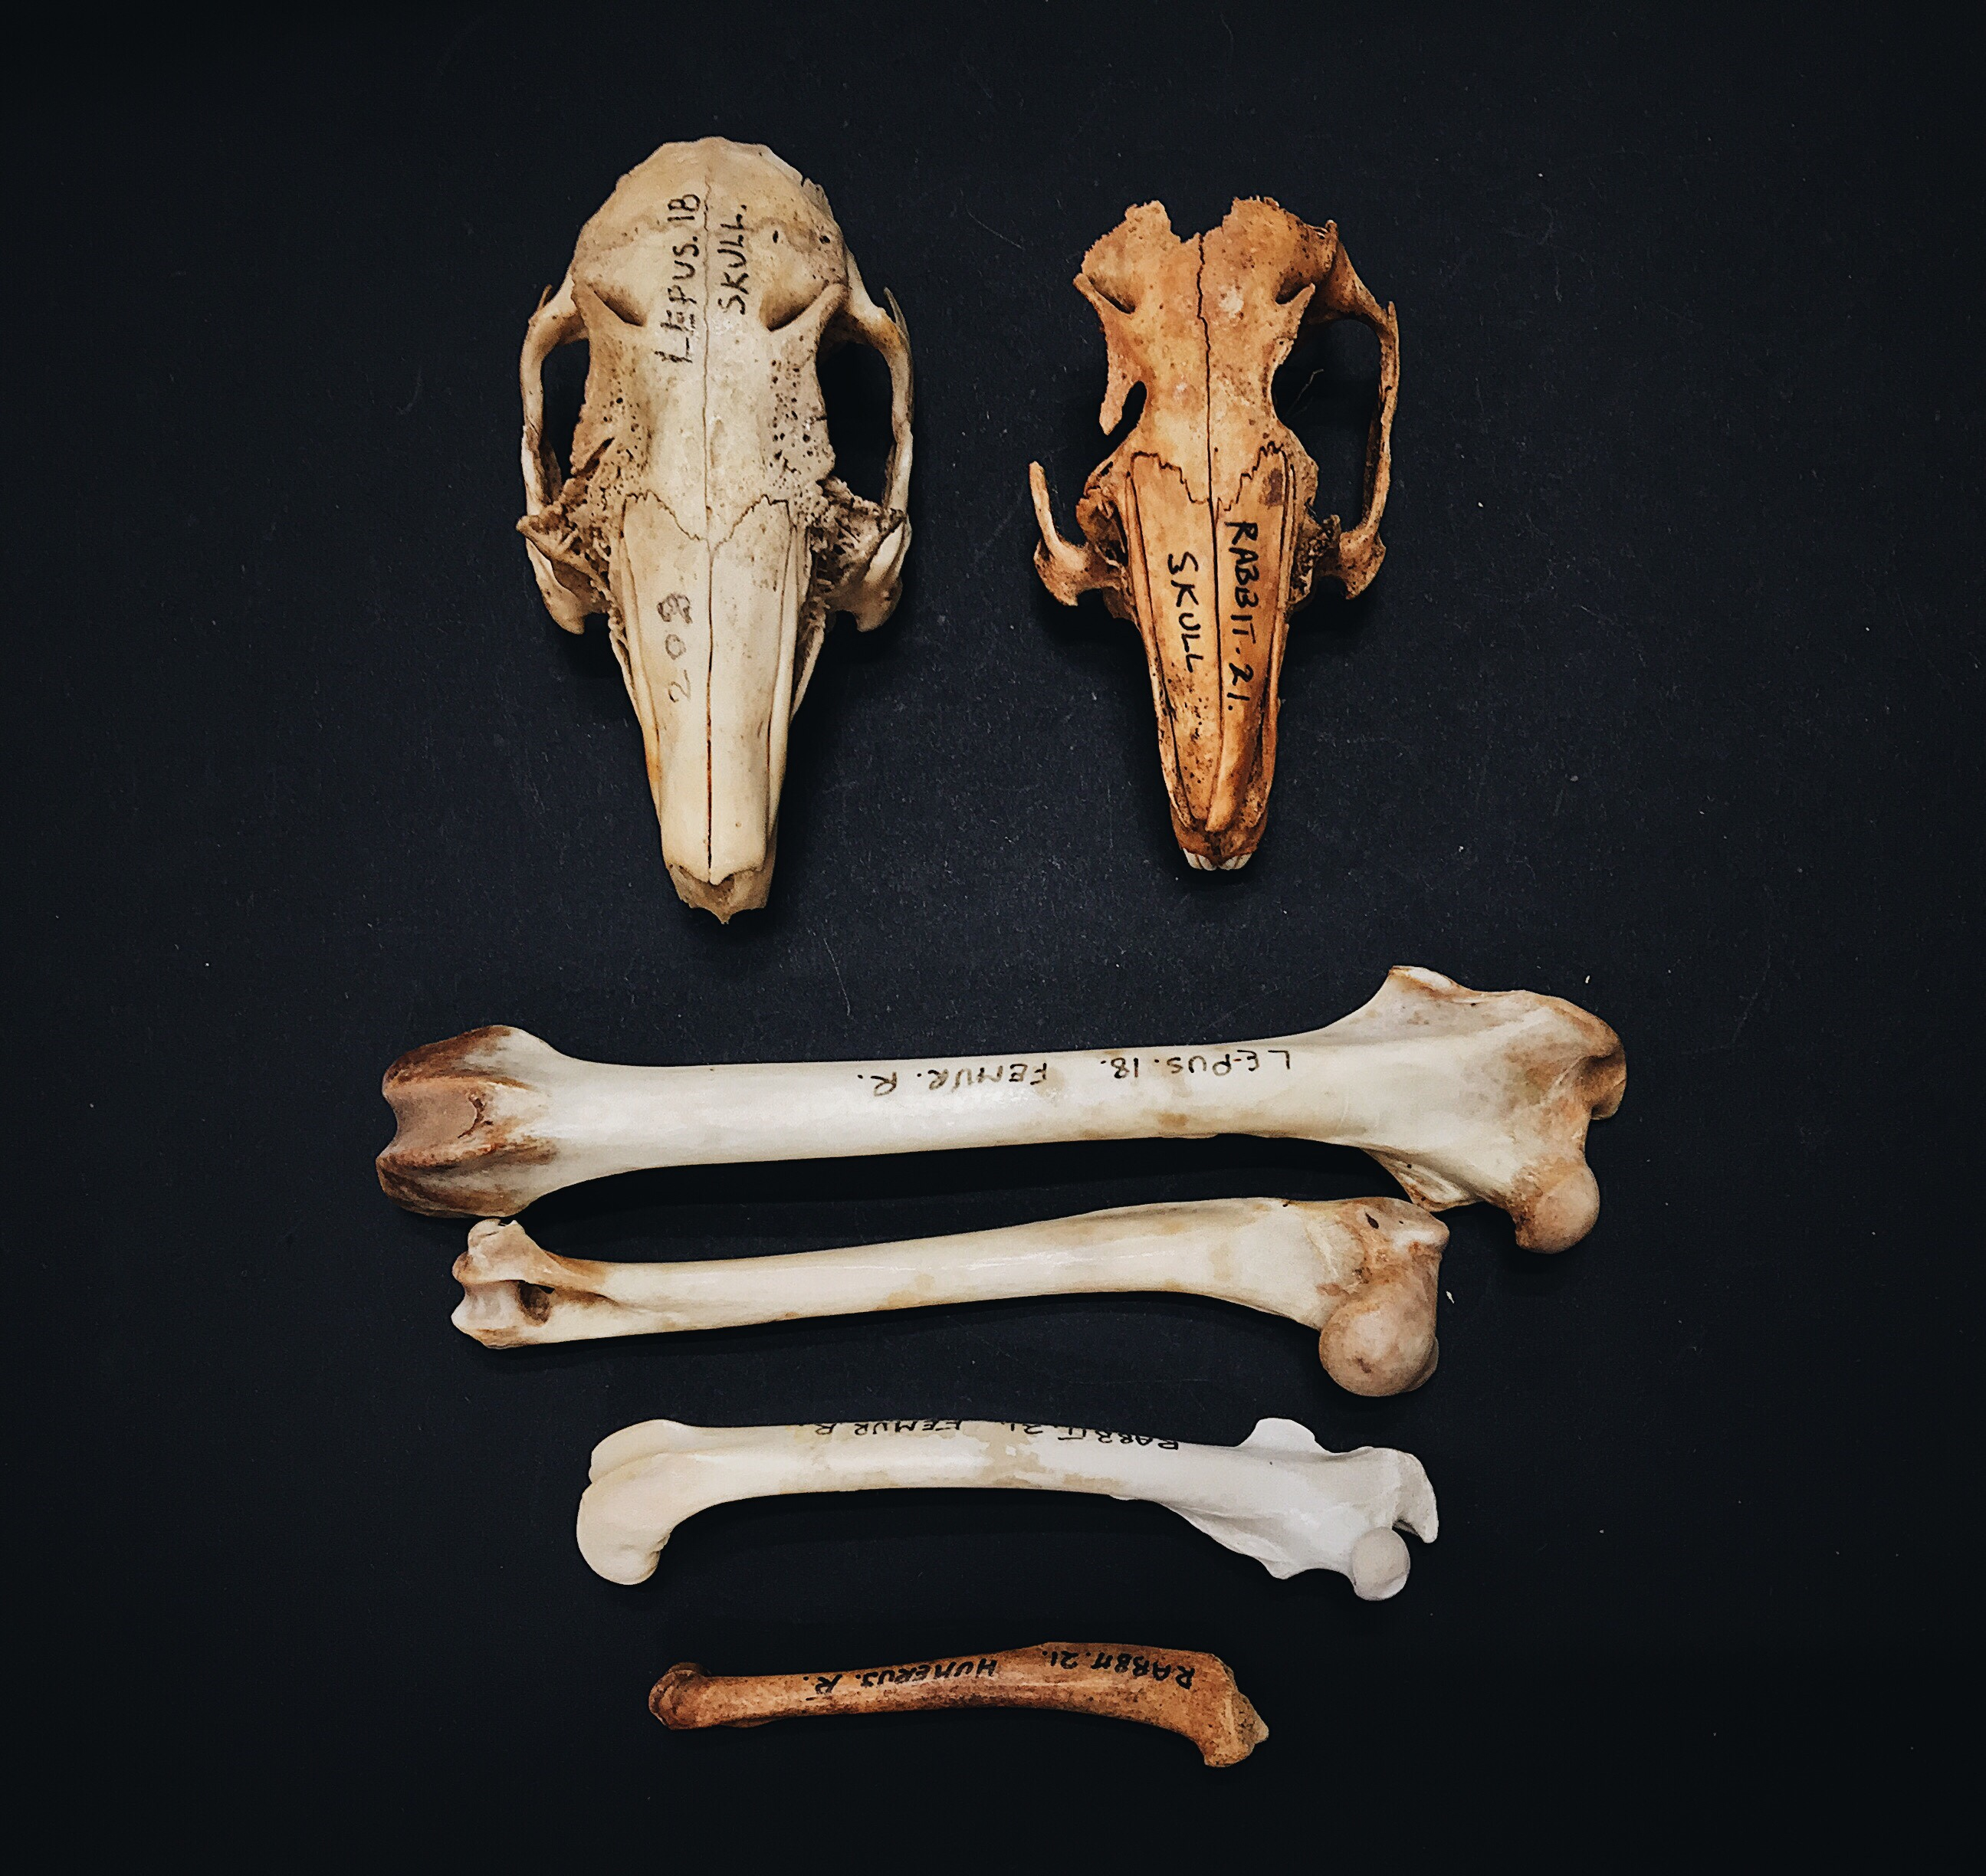 Bones That Look Like Other Bones A Minipost About Rabbits And Hares